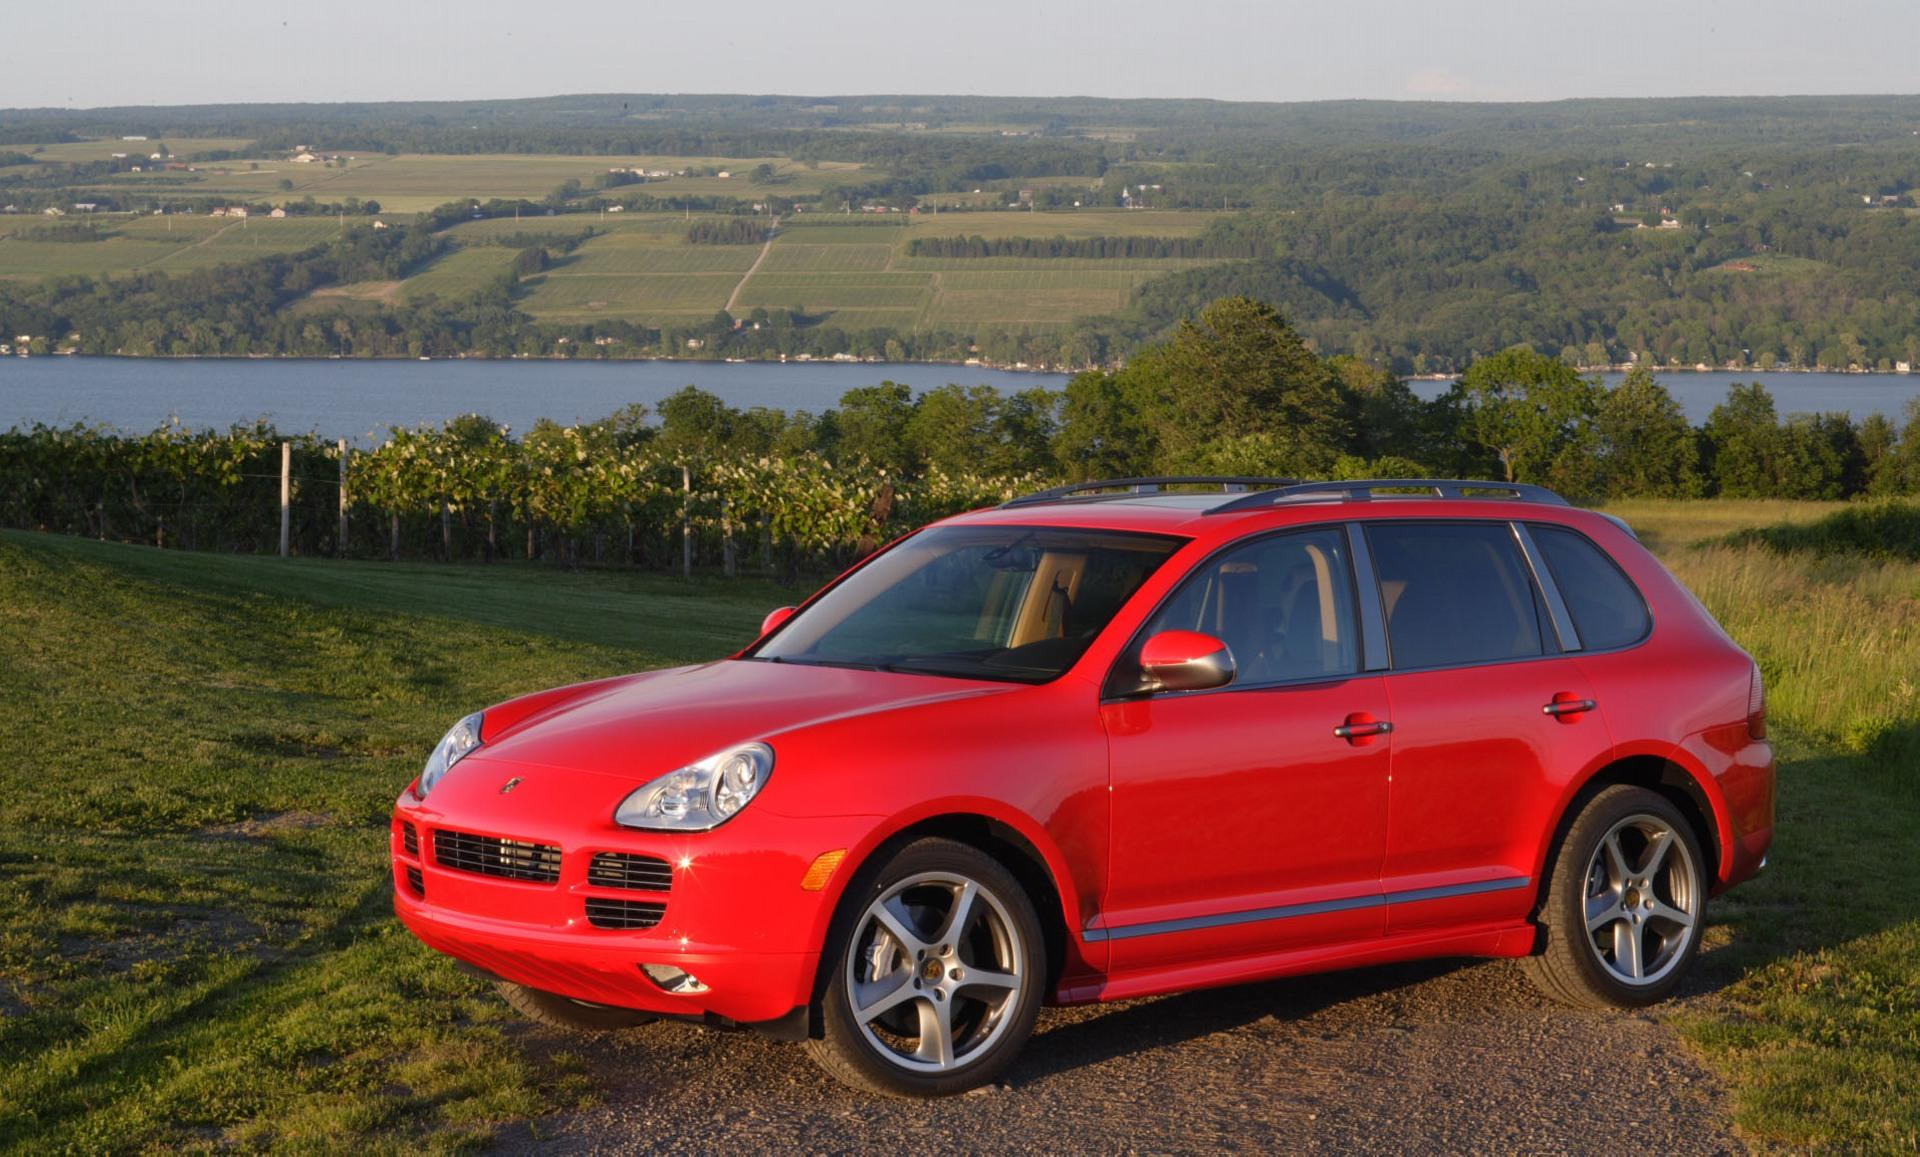 2006 Porsche Cayenne S Titanium Edition Images Photo 2006